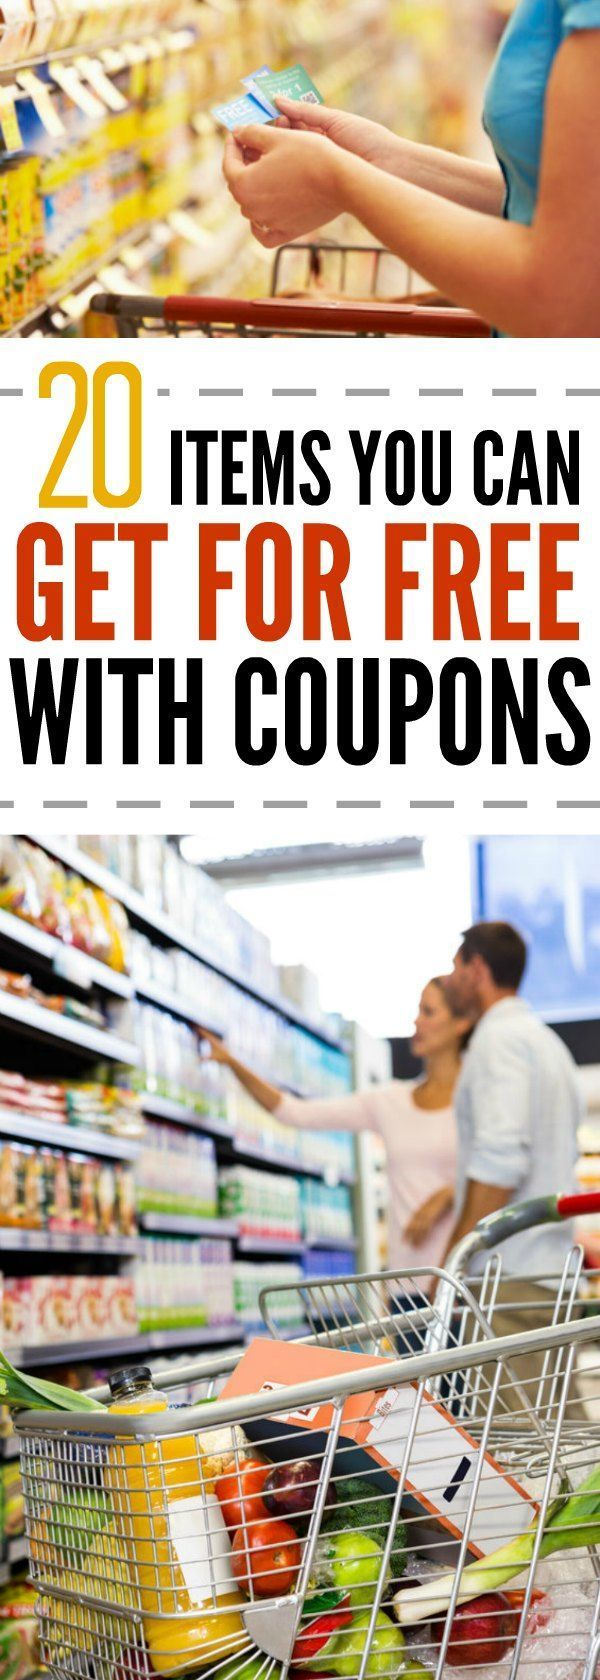 Here are 20 items you can get for free with coupons. Use our tips to get these items for free with coupons easily. Using coupons effectively.